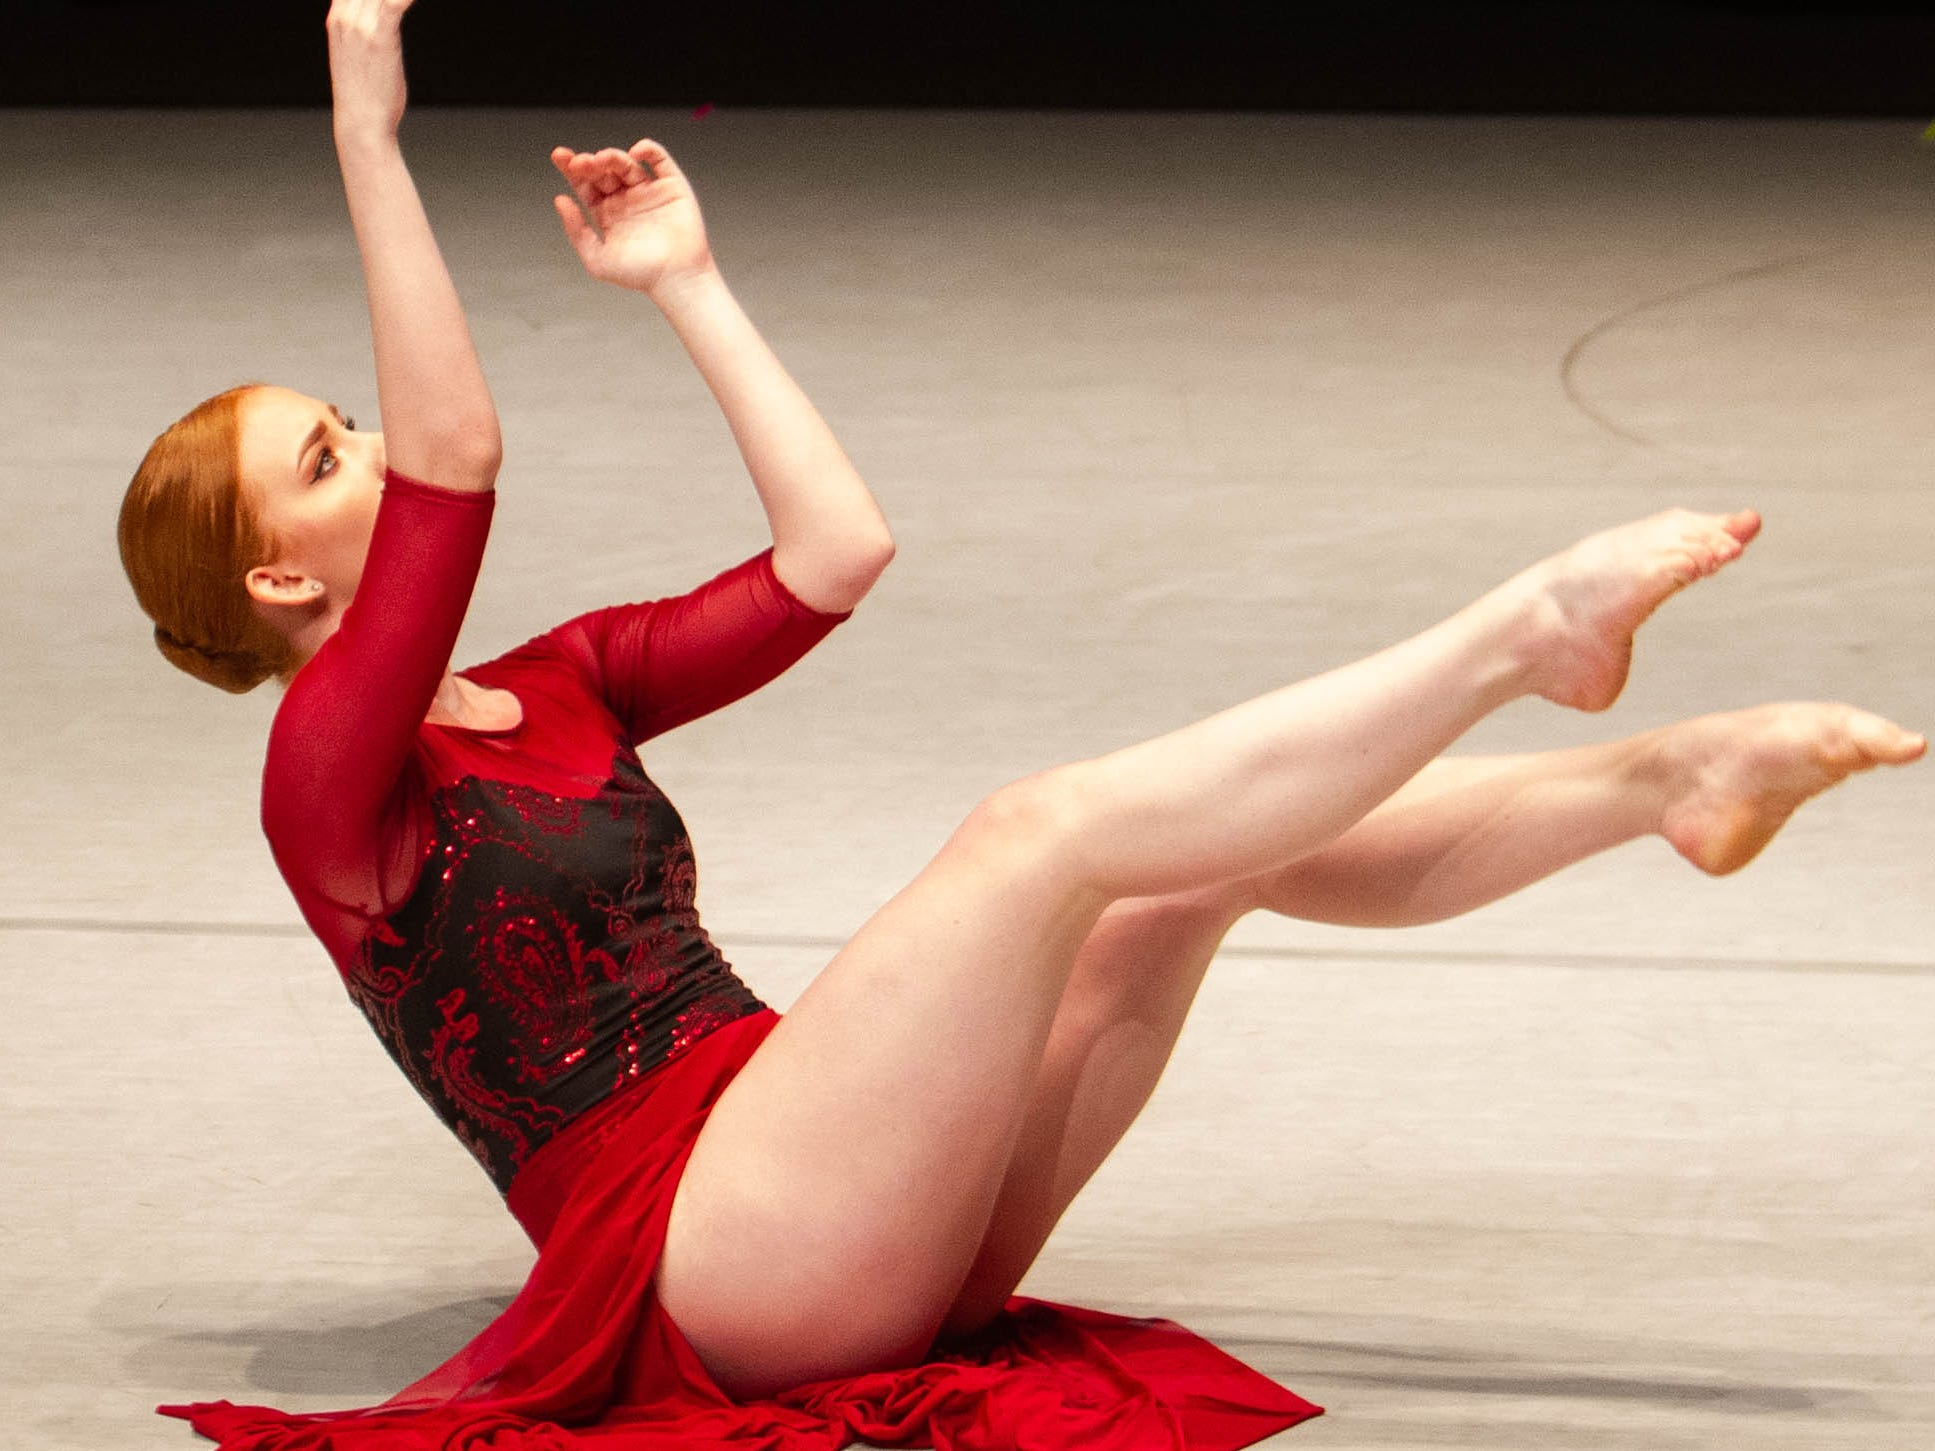 Cassi Sherbert competes at the inaugural year of Grand Jeté dance competition in the Senior Contemporary Modern division, at the South Carolina Governor's School for the Arts and Humanities, on Saturday, March 2, 2019.